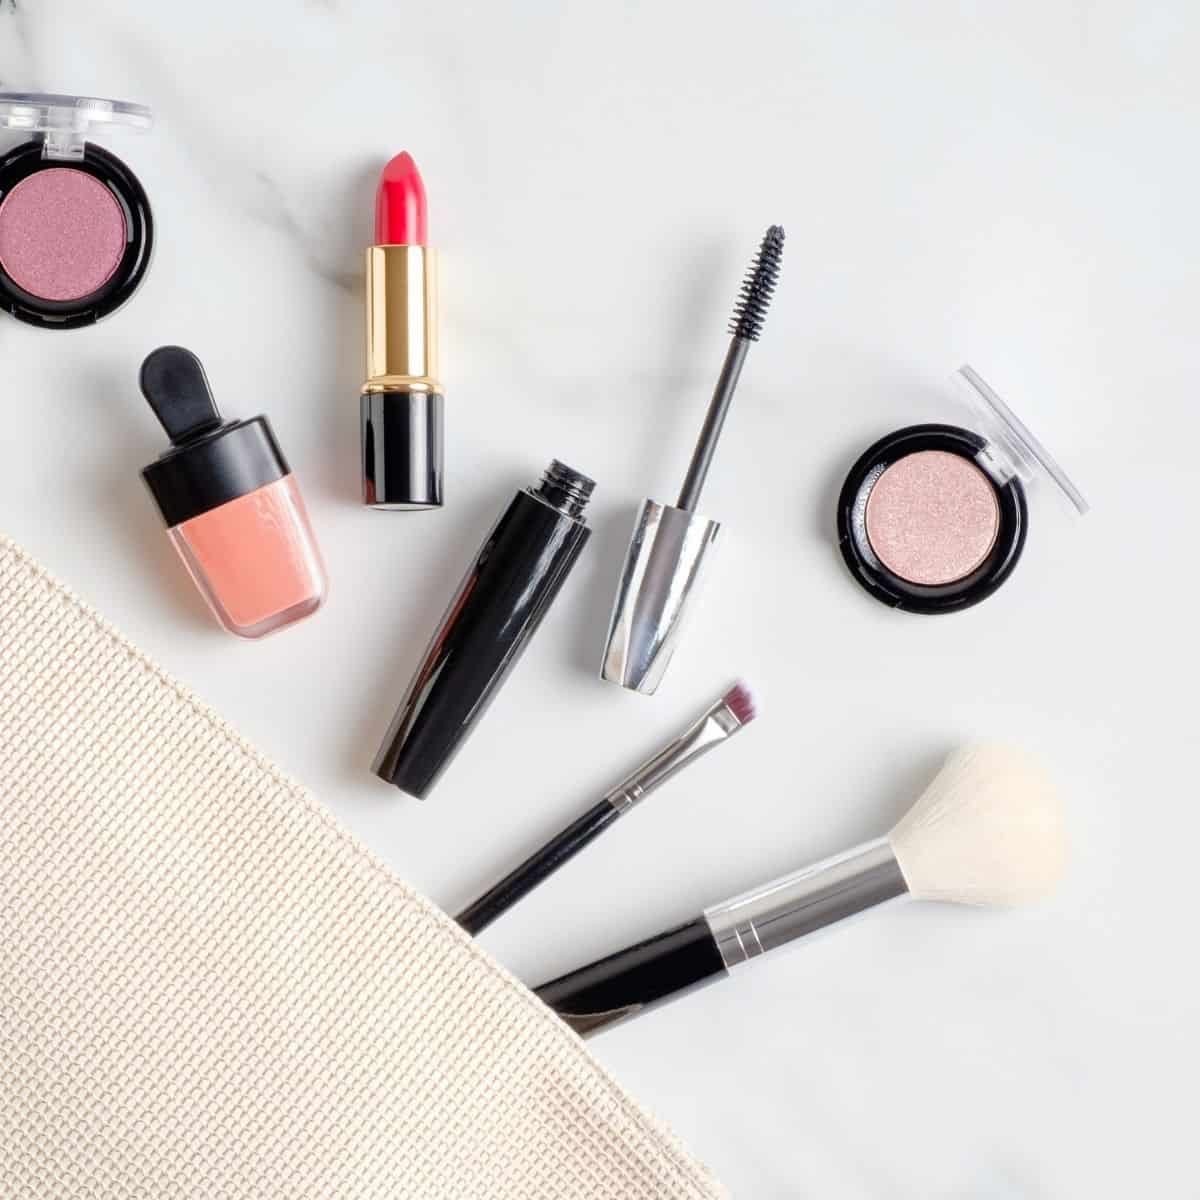 How to Downsize Makeup to Just the Essentials